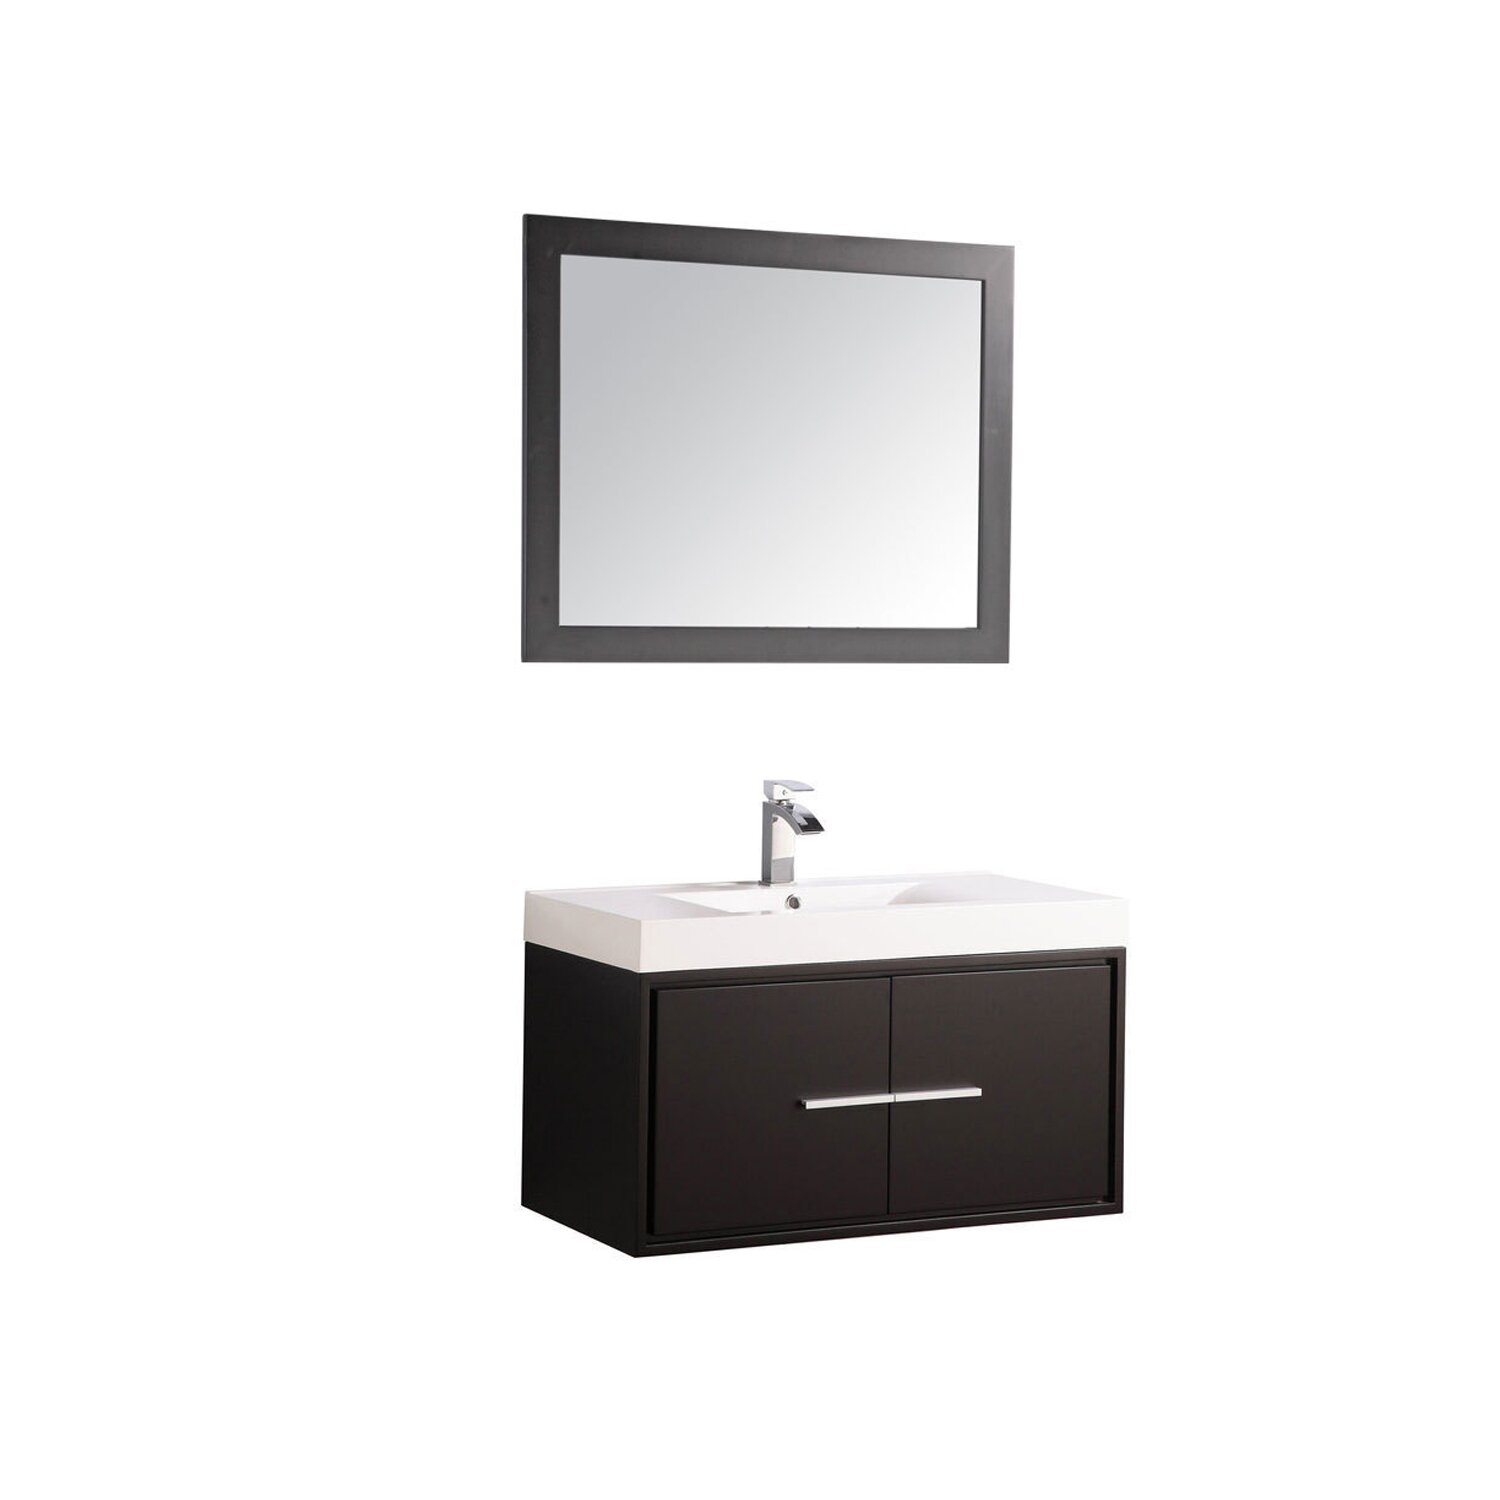 Mtdvanities Cypress 36 Single Floating Bathroom Vanity